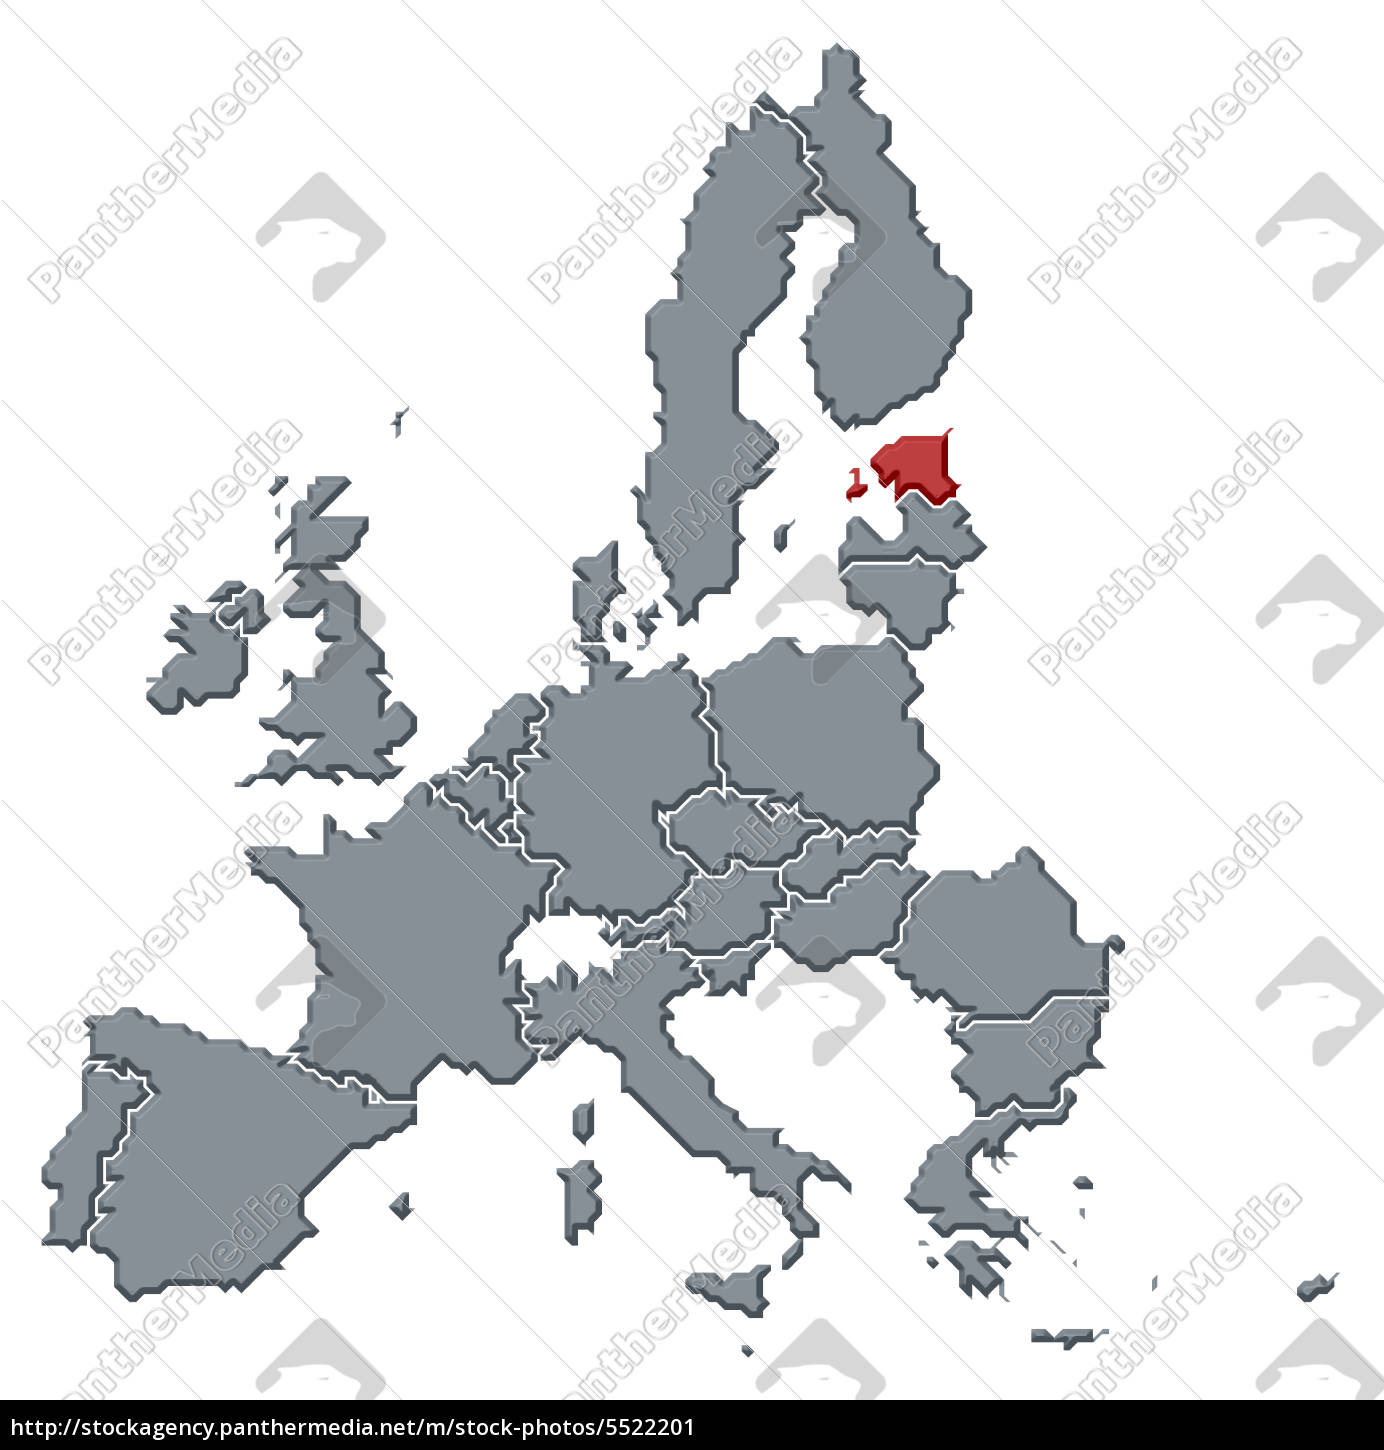 Stock Photo 5522201 - Map of the European Union Estonia highlighted